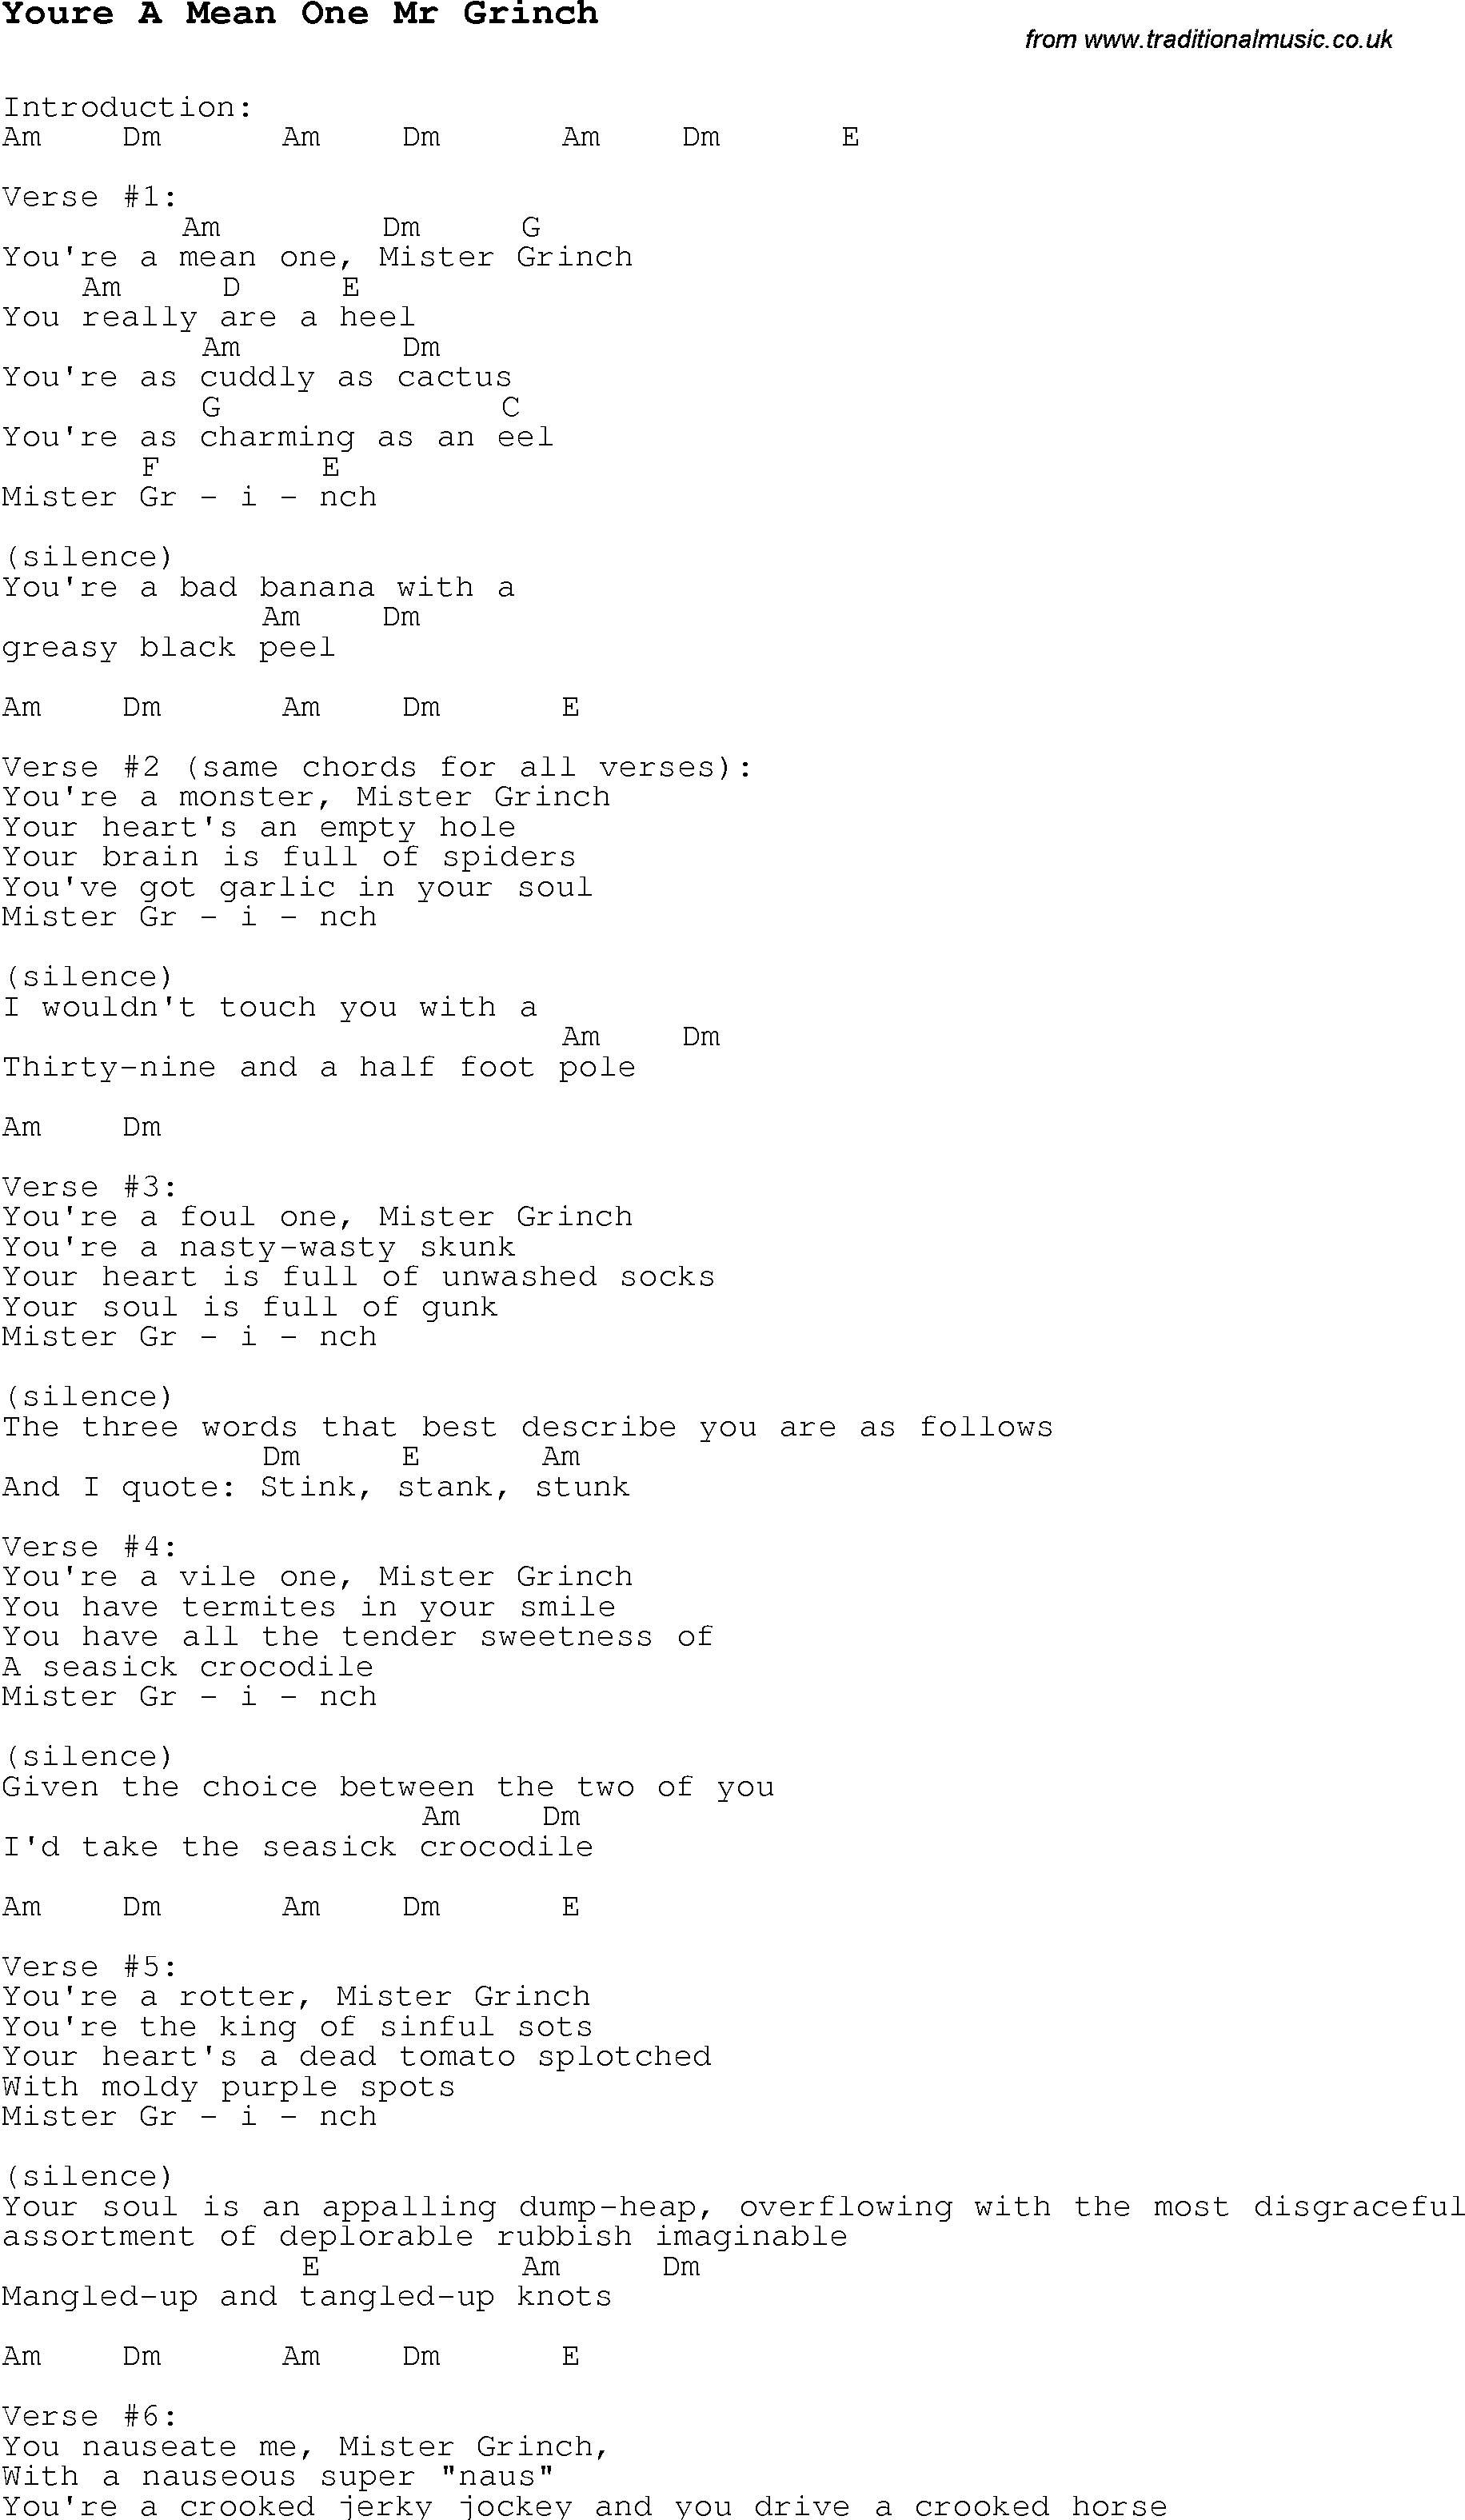 Christmas Carol/Song lyrics with chords for Youre A Mean One Mr Grinch